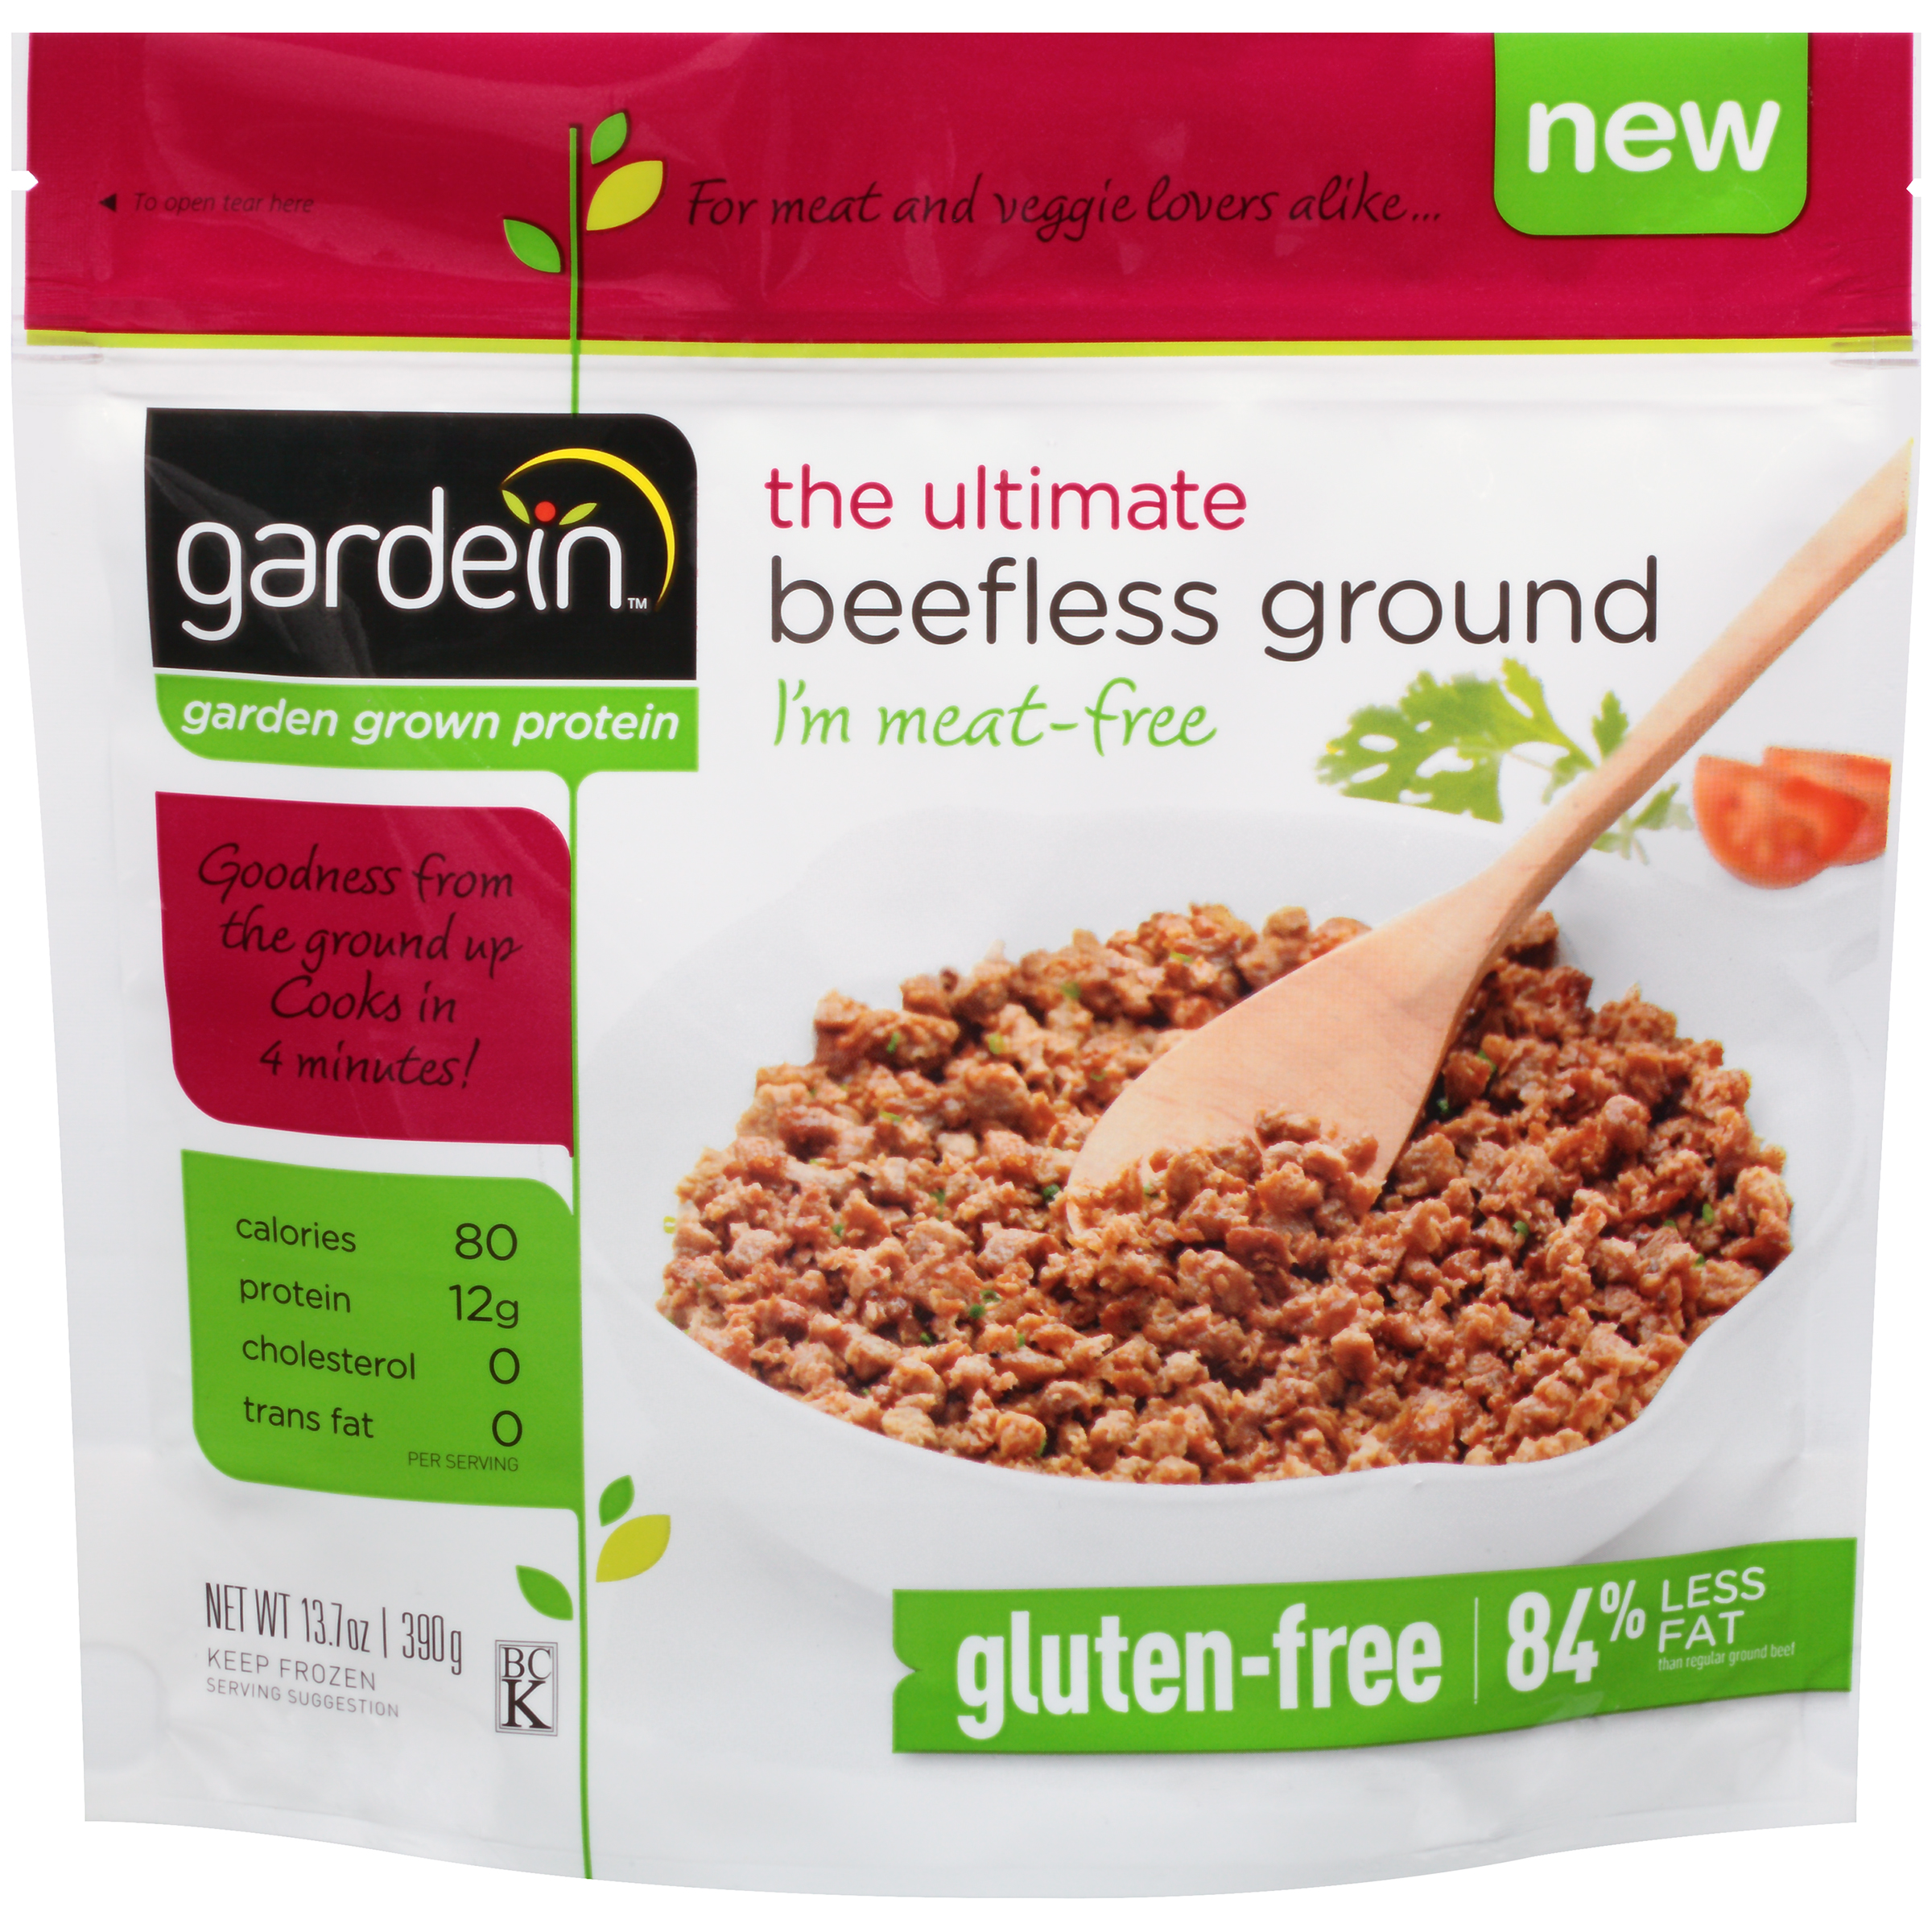 Gardein™ The Ultimate Beefless Ground 13.7 oz. Bag